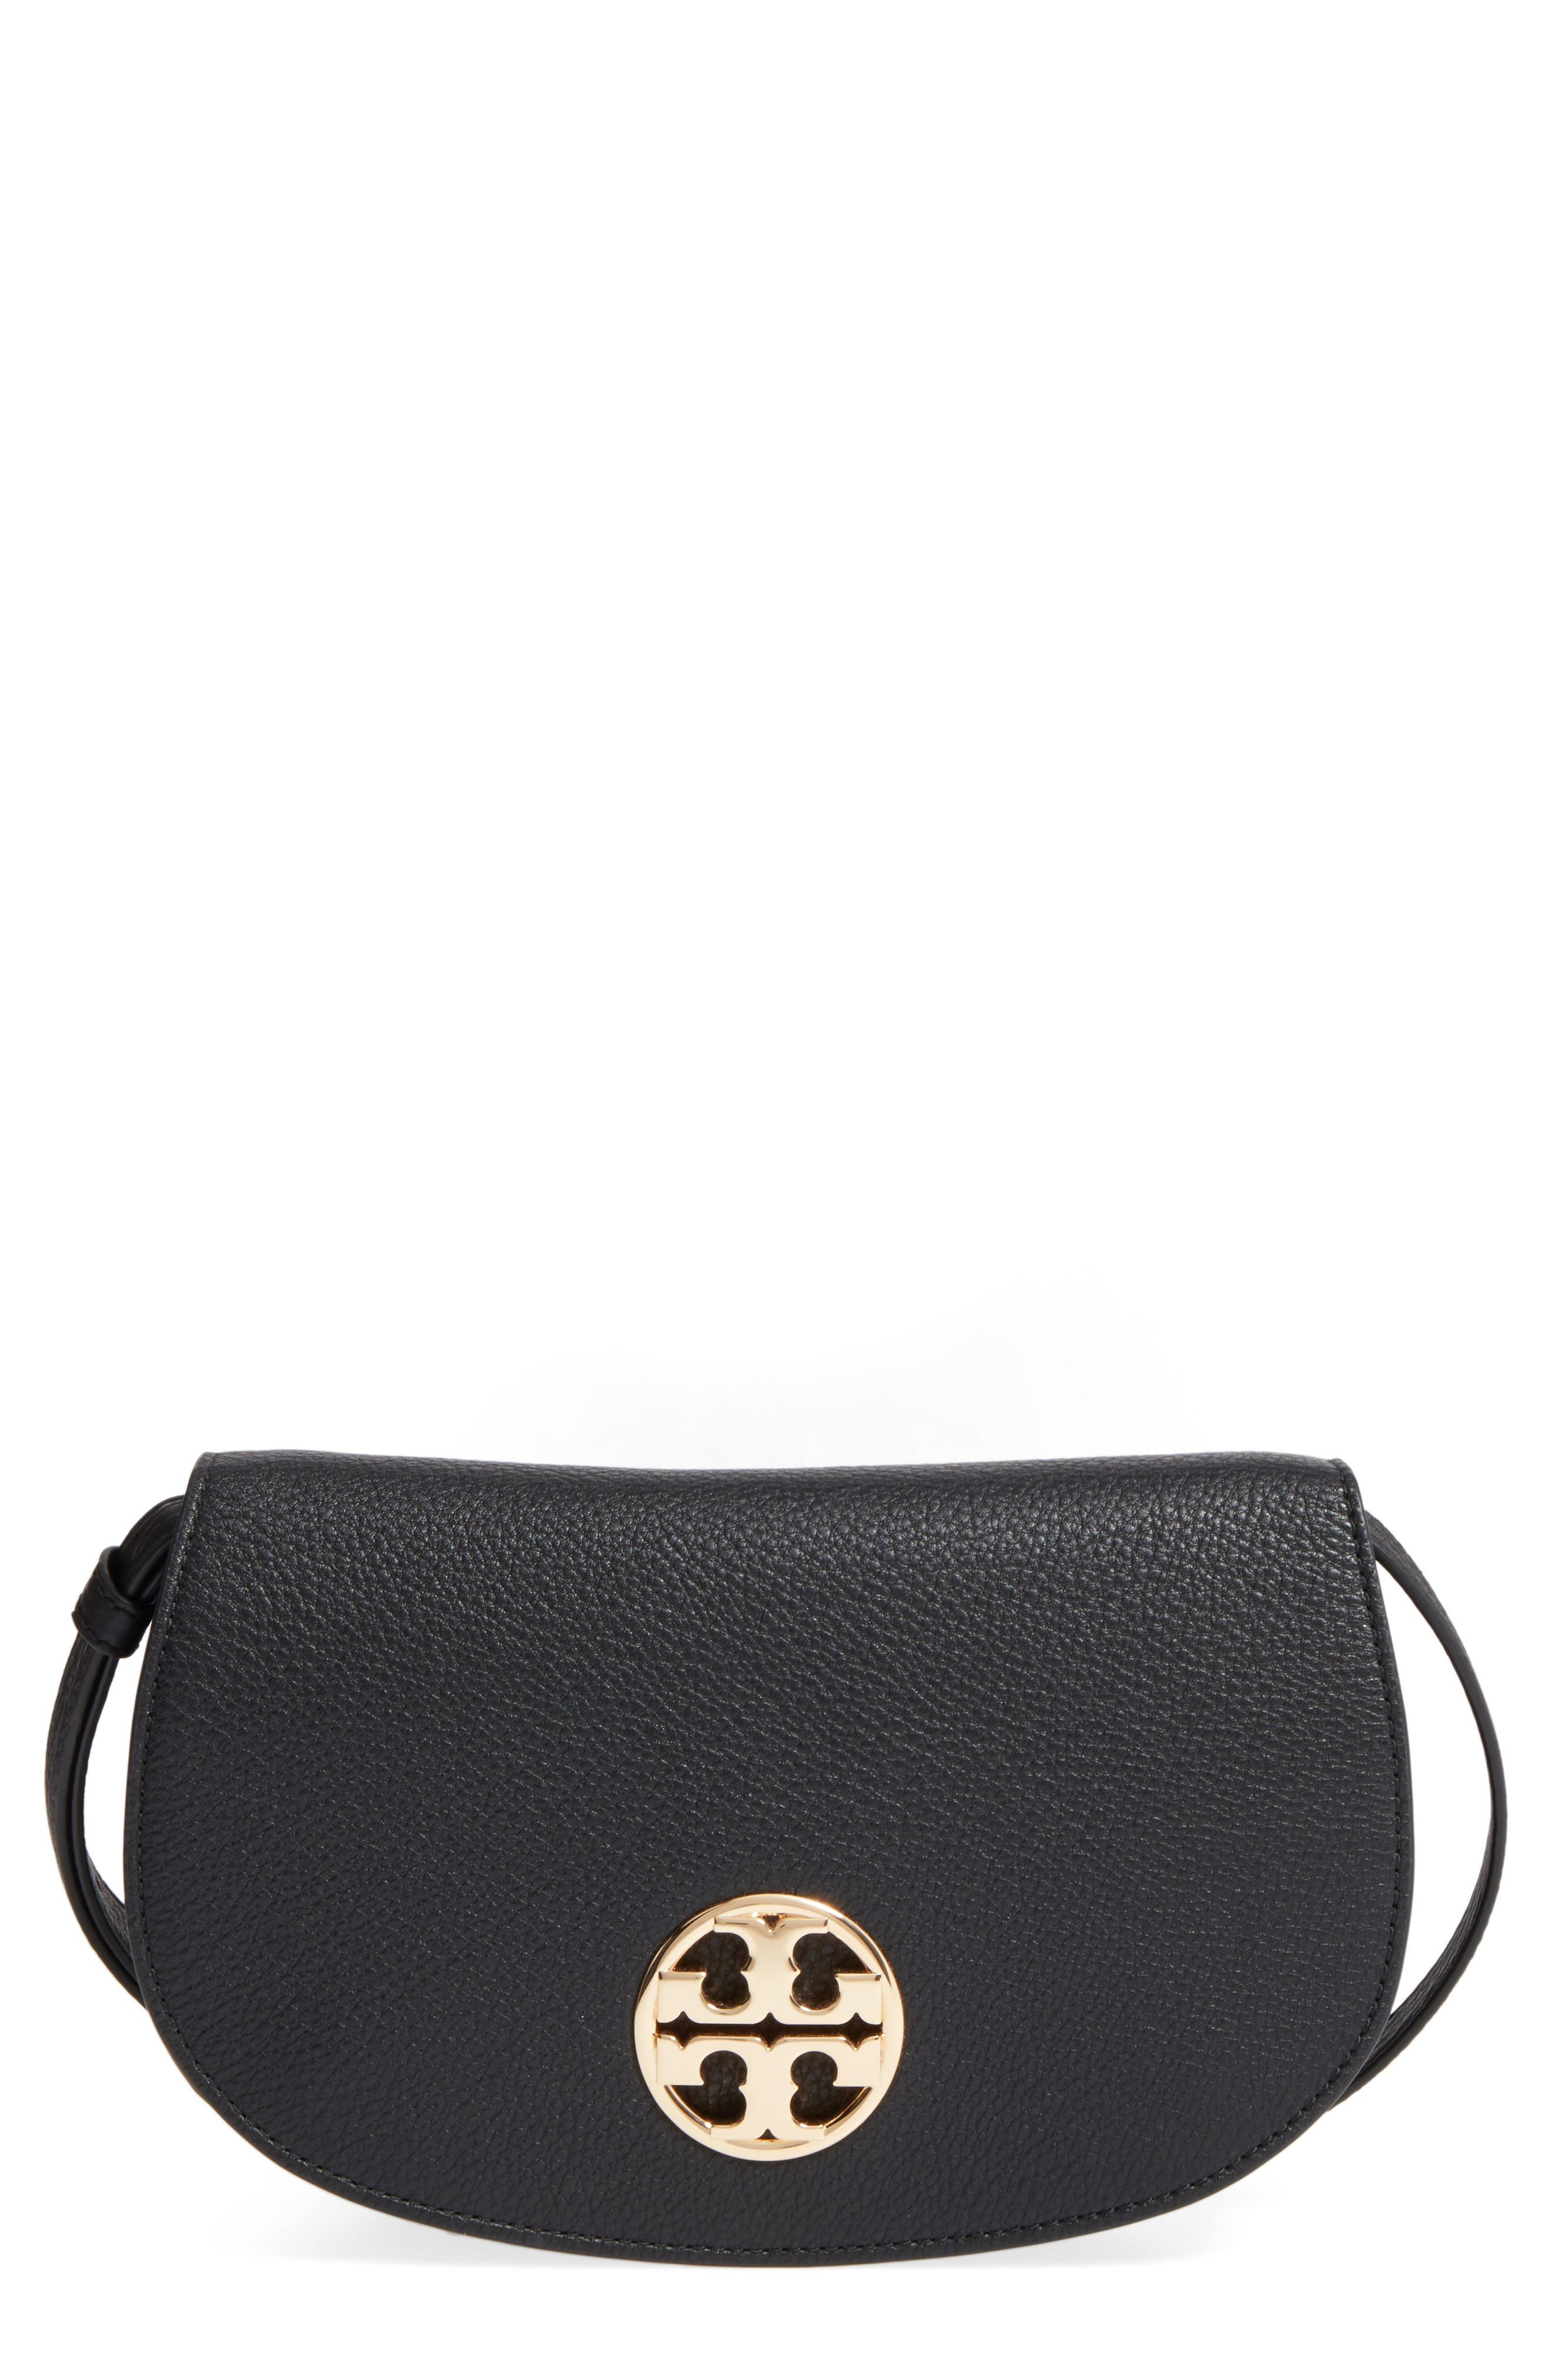 Alternate Image 1 Selected - Tory Burch Jamie Leather Clutch